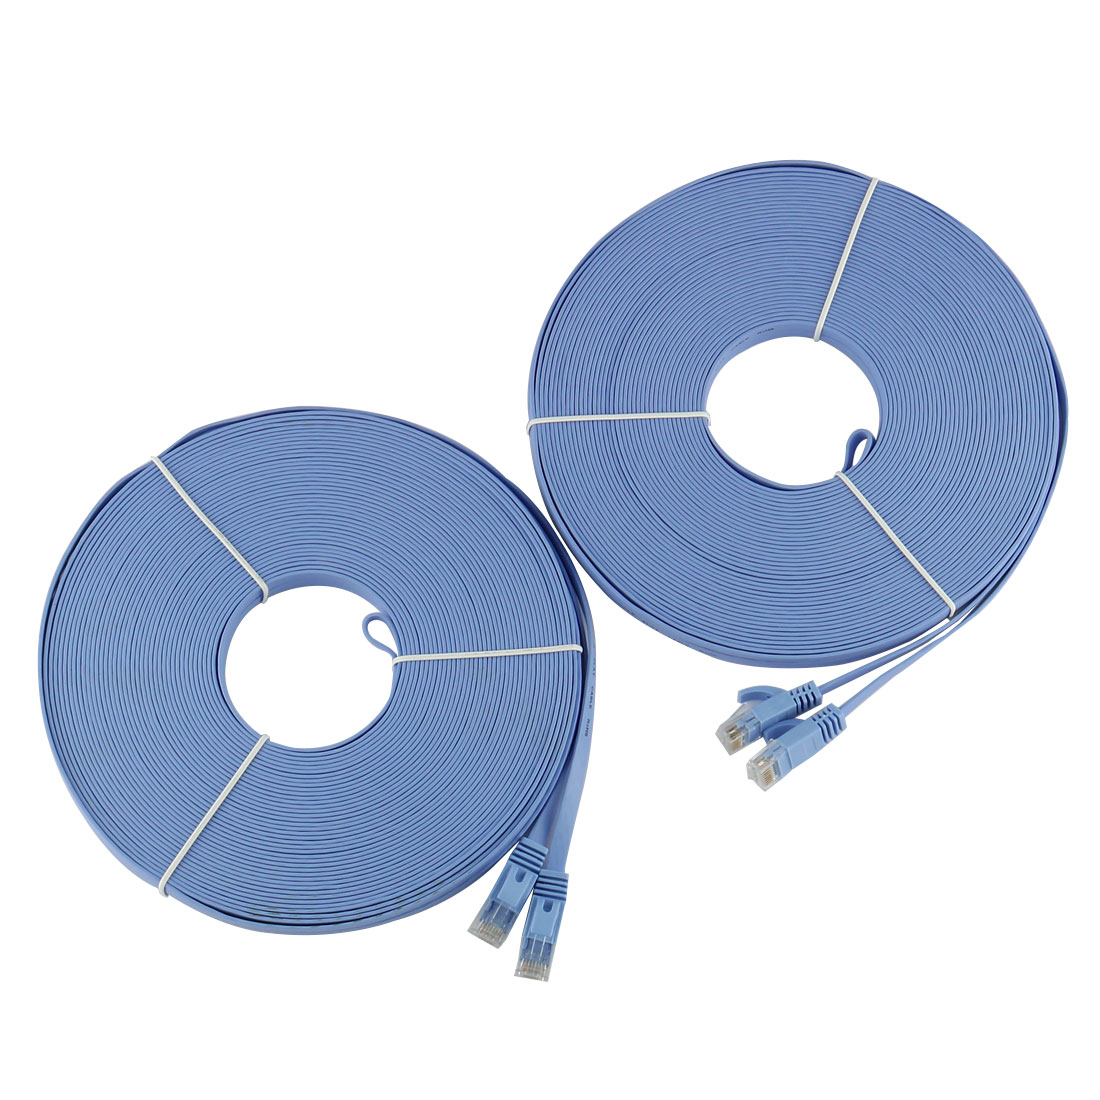 98FT-30M-CAT6-CAT-6-Flat-UTP-Ethernet-Reseau-Cable-RJ45-Patch-LAN-Cord-Bleu